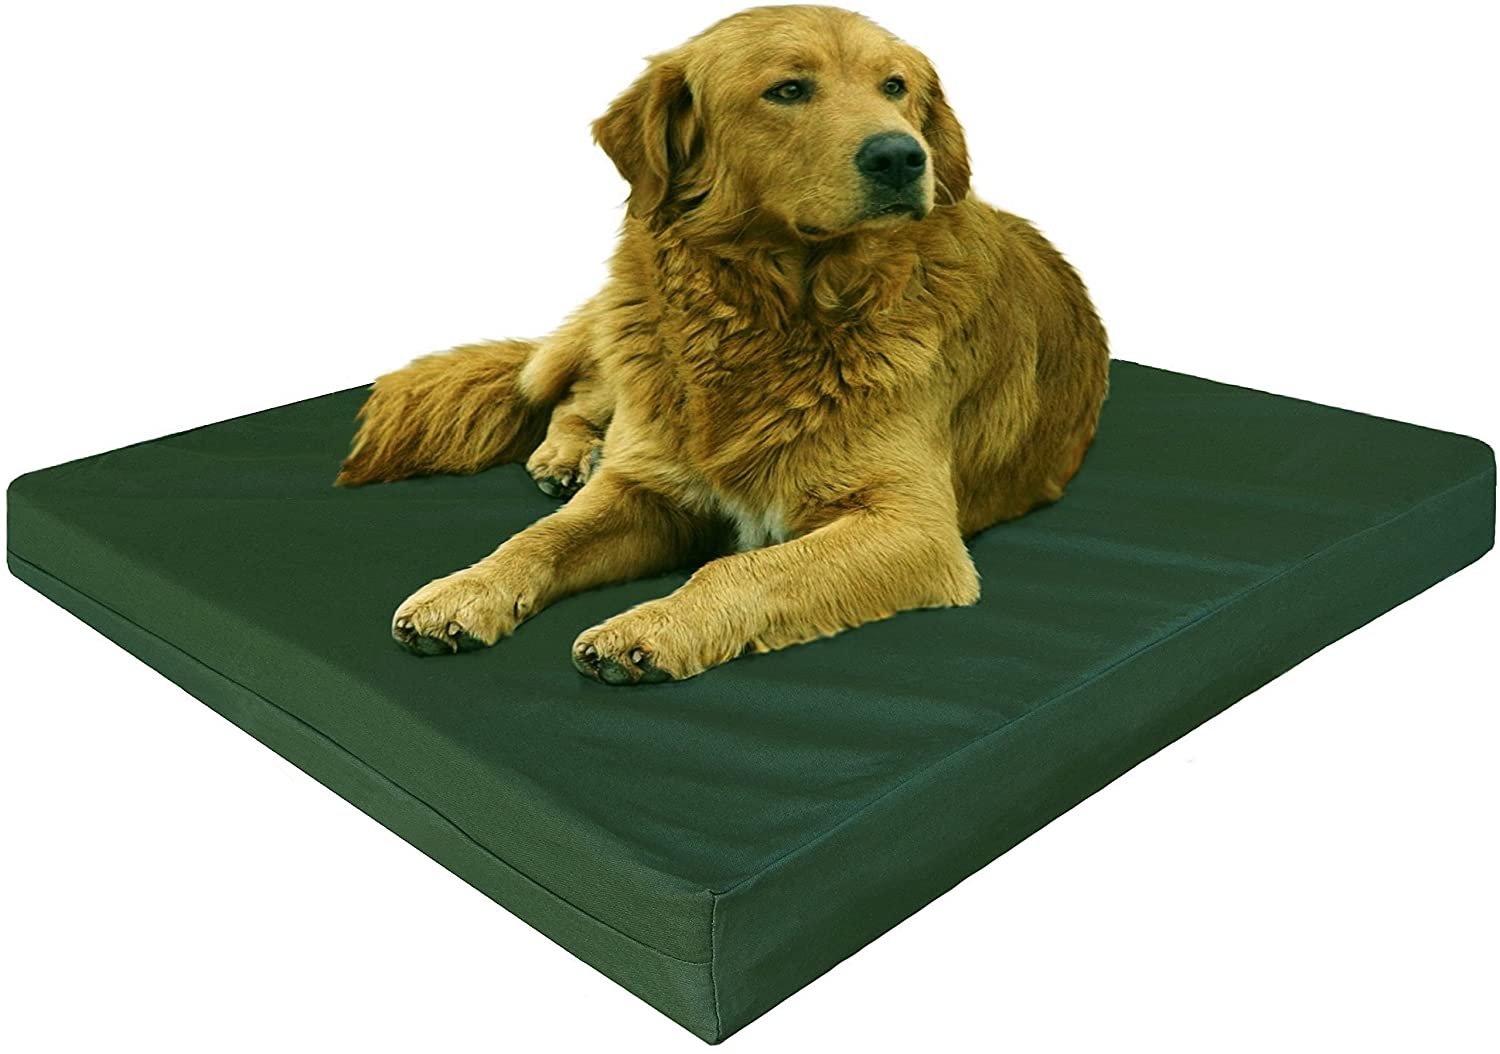 Extra large orthopedic dog beds best price - Amazon Com Dogbed4less Gel Cooling Memory Foam Dog Bed With Durable Washable Canvas Cover And Waterproof Internal Liner Extra 2nd Replacement Case